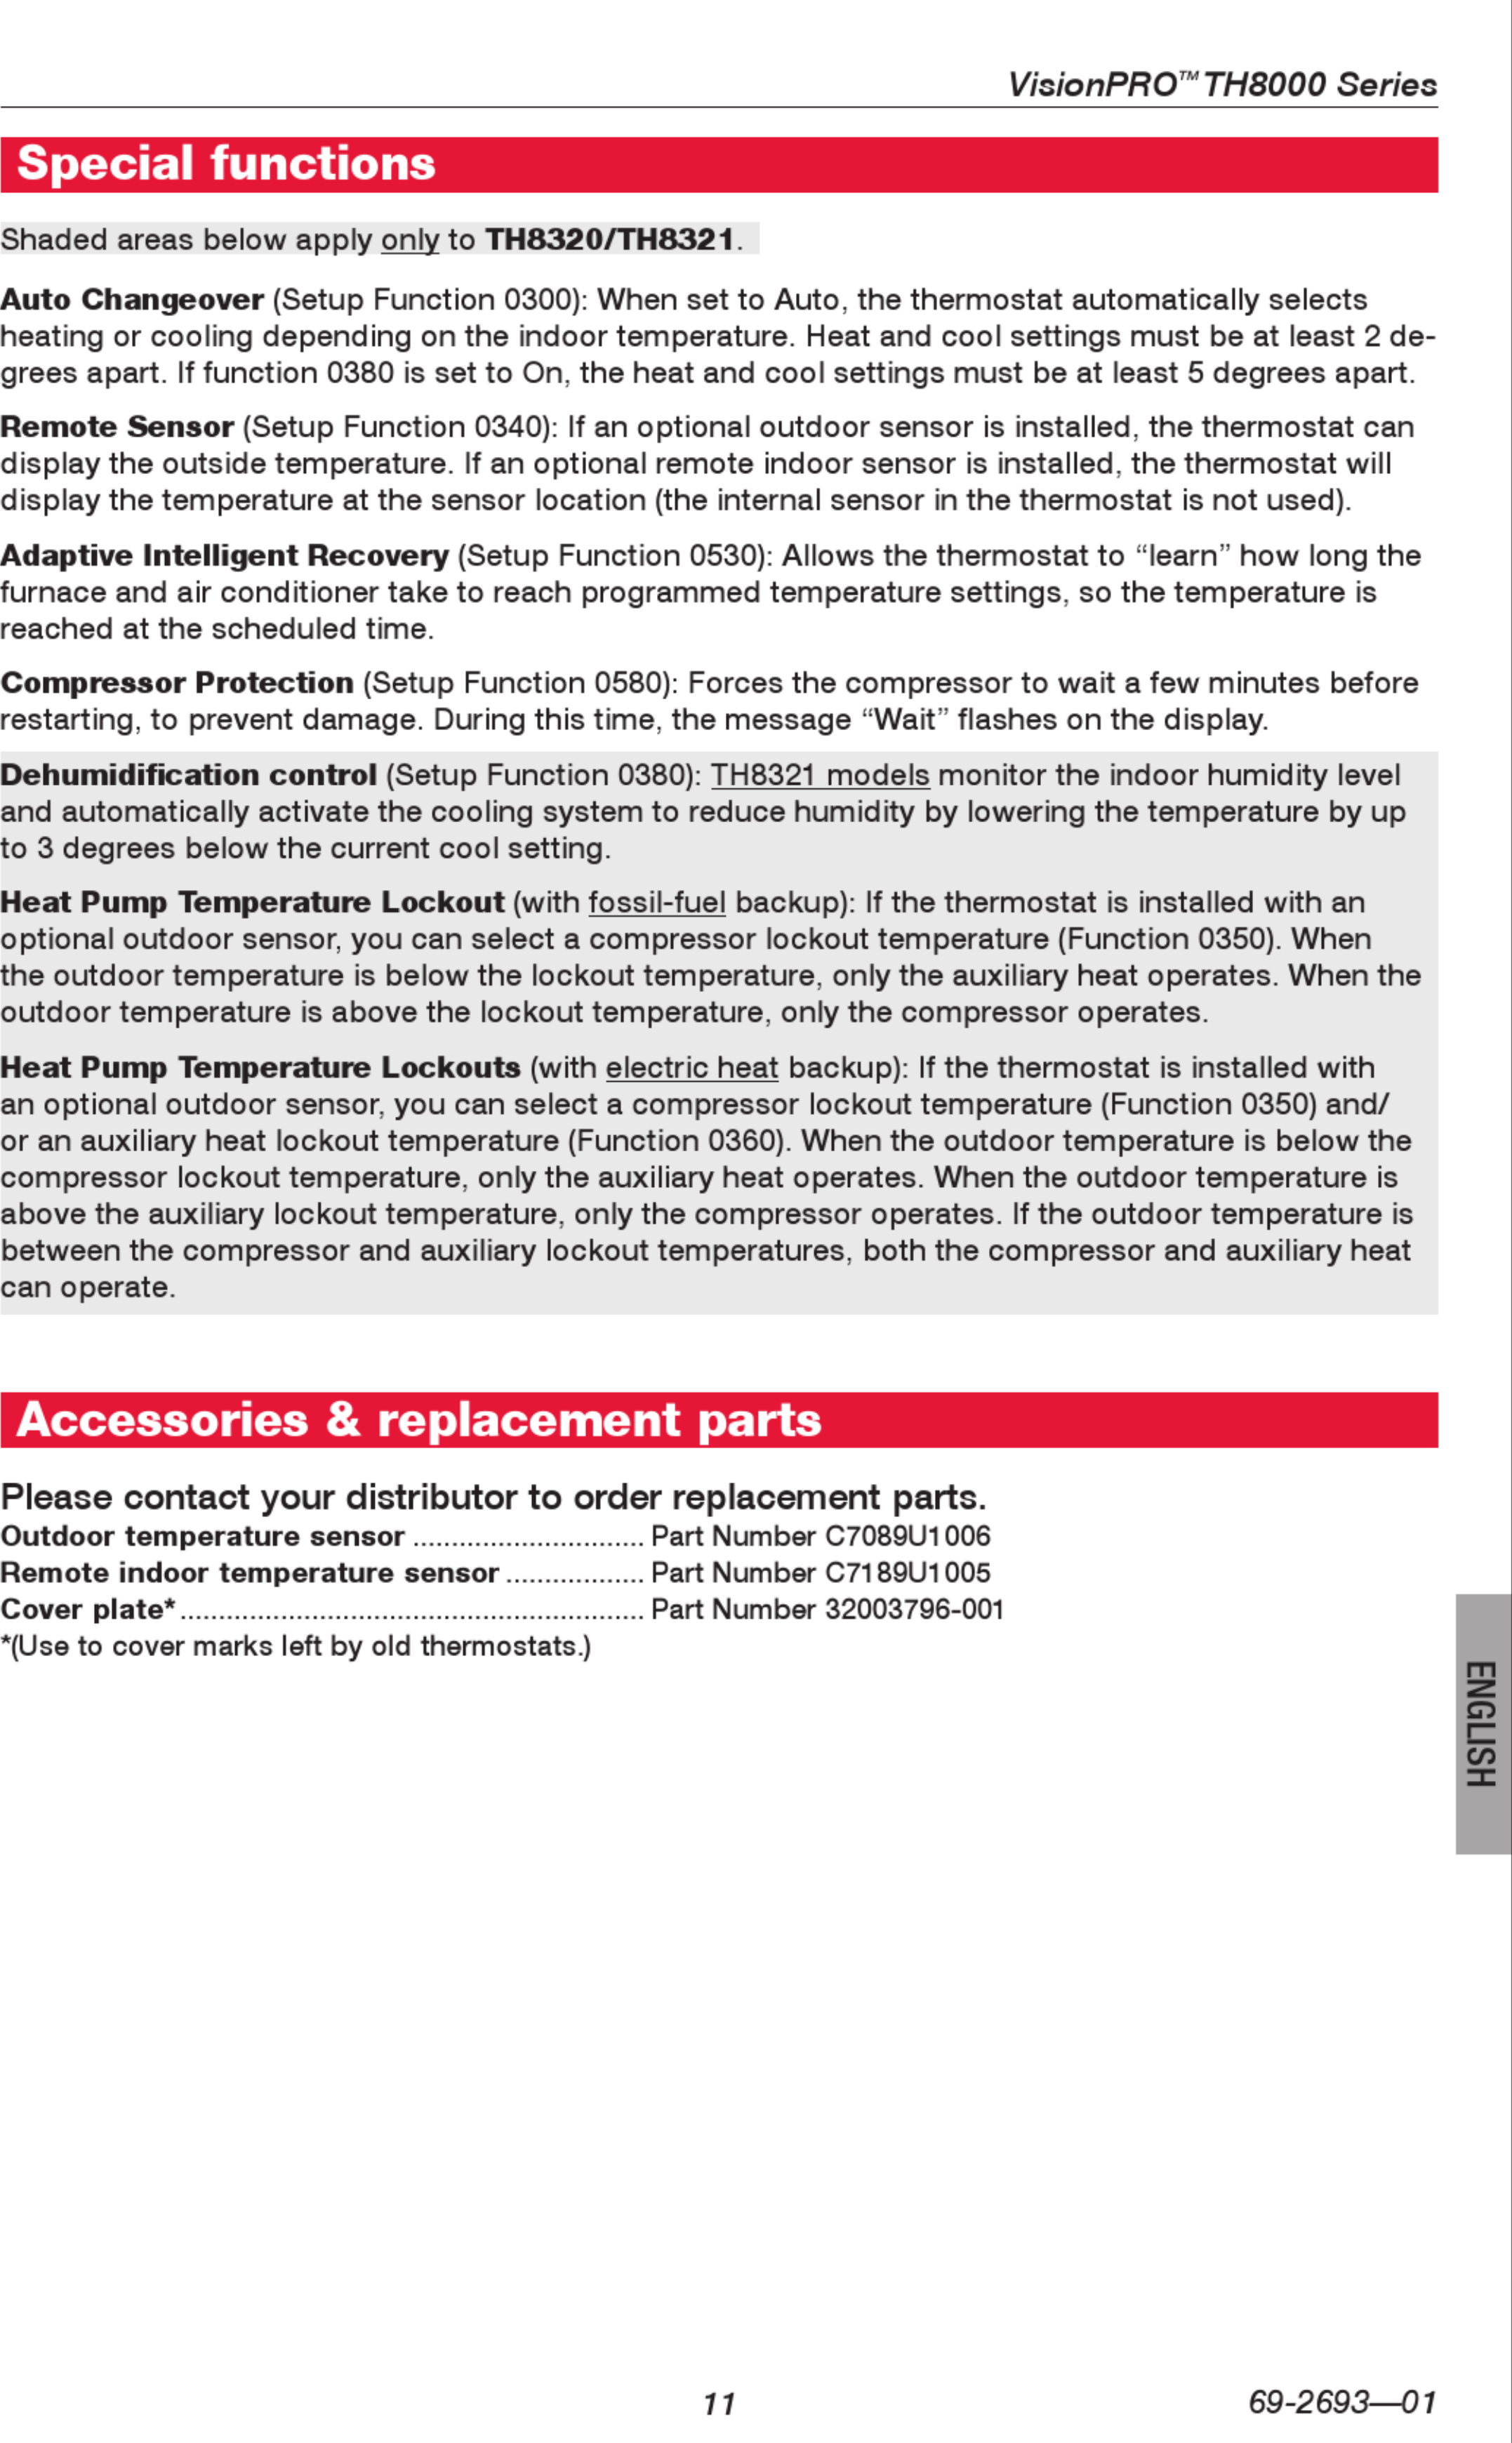 Honeywell Visionpro Th8000 Series Installation Manual 1003127 User Wiring Diagram Page 11 Of 12